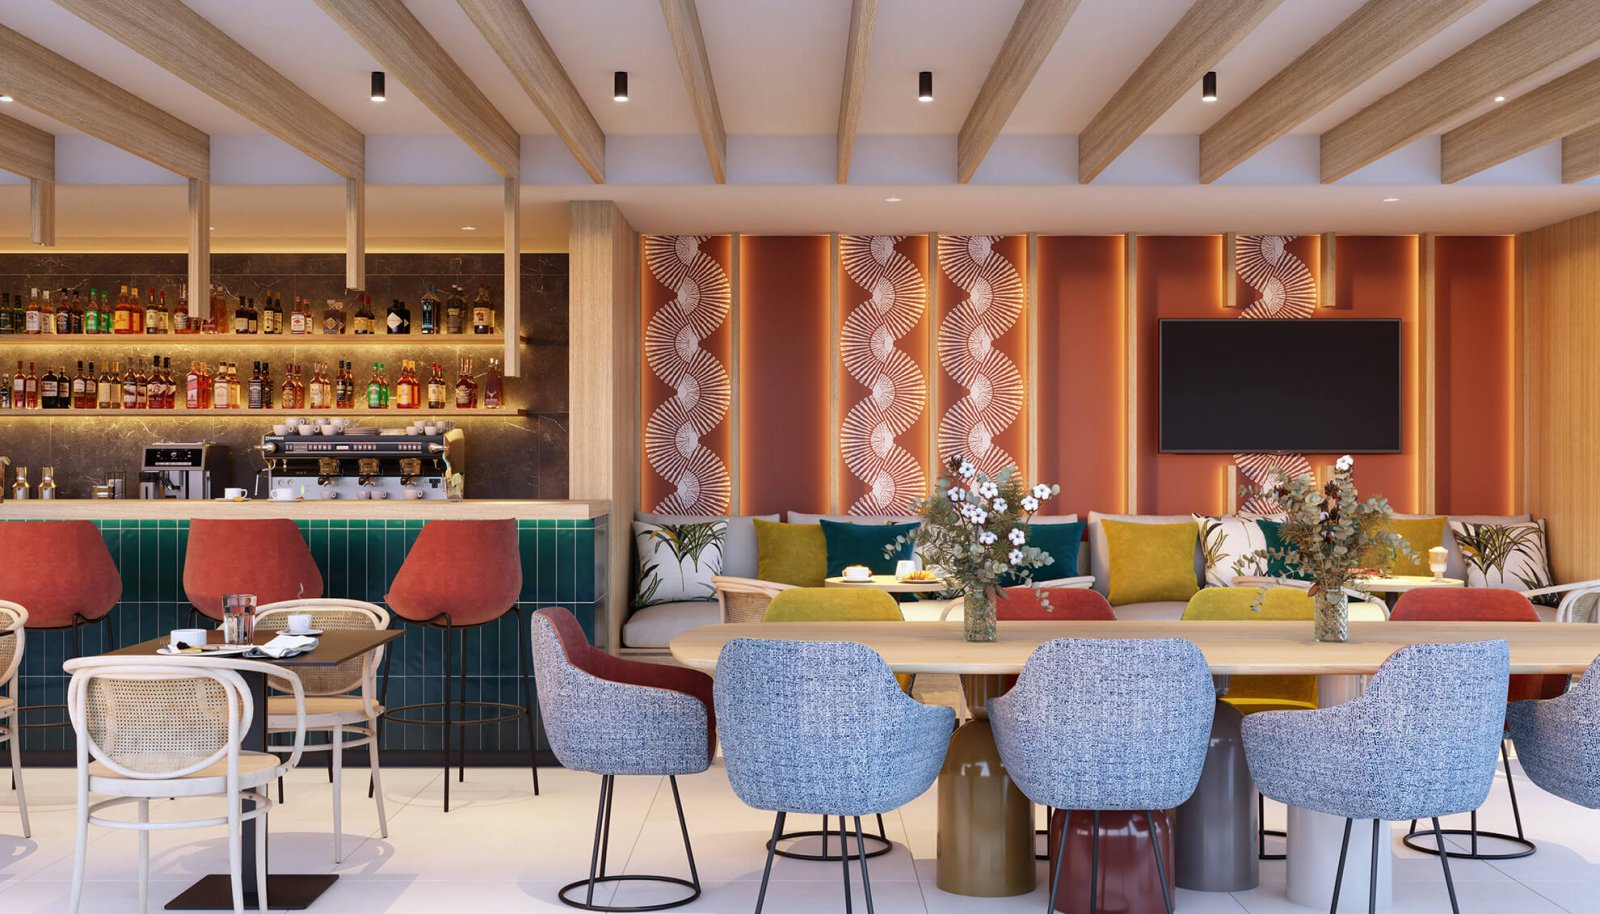 Another view of the pub with sofa and tables of the Sotogrande